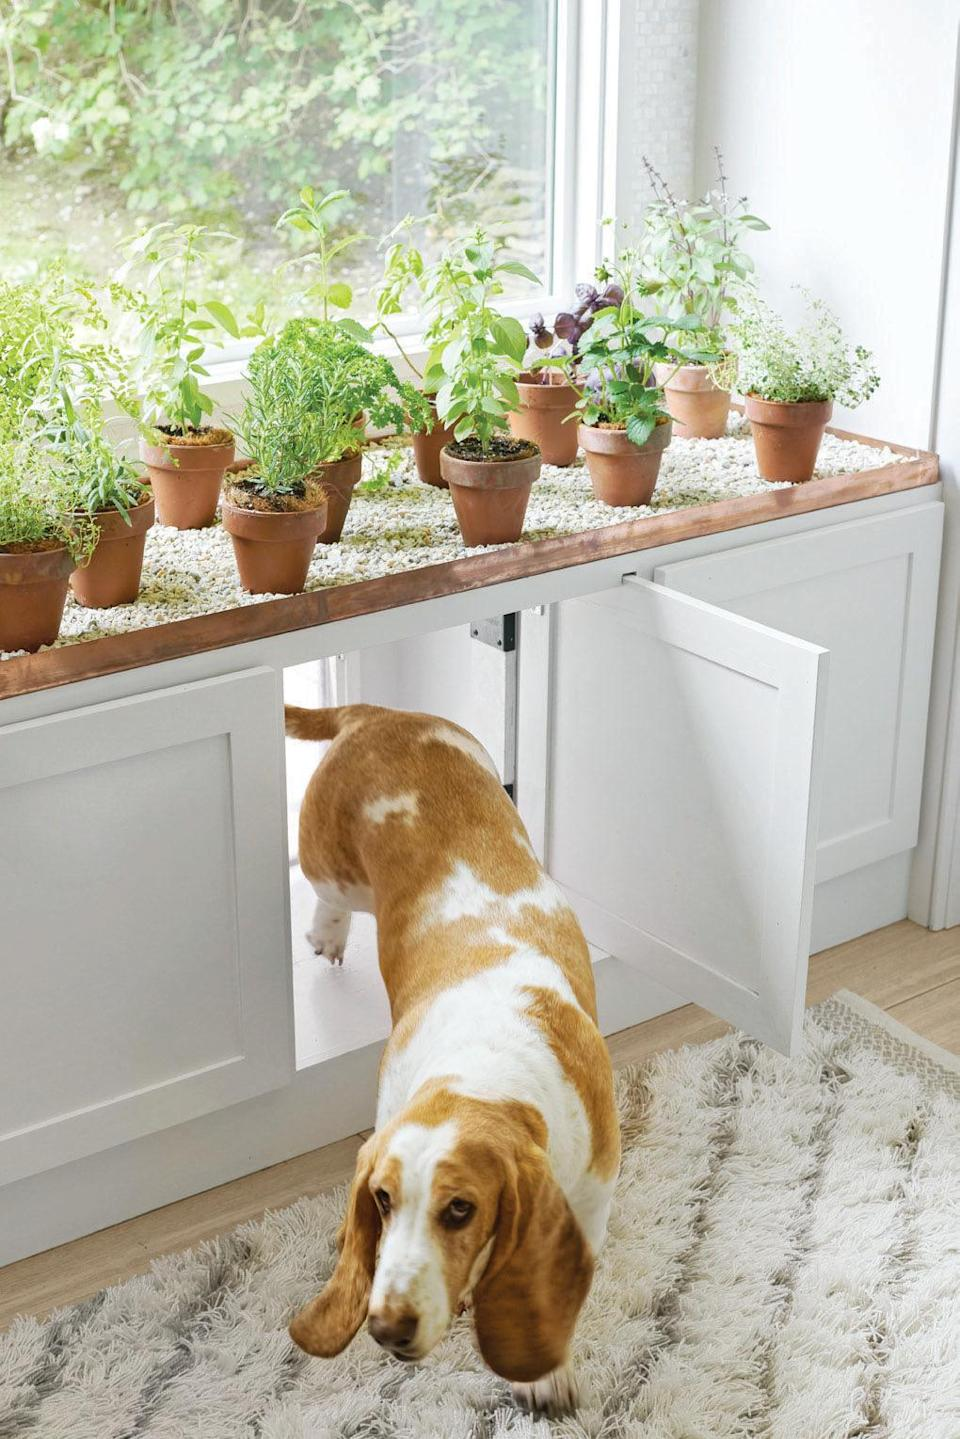 """<p>The immediate guilt after keeping your dog out of the """"no-zones"""" can feel like a break-up. Maybe they knocked over a vase, or expertly snagged a few bites of your dinner, or even tracked mud all over the living room (you need a <a href=""""https://www.housebeautiful.com/shopping/home-accessories/g23303205/machine-washable-rugs/"""" rel=""""nofollow noopener"""" target=""""_blank"""" data-ylk=""""slk:machine-washable rug"""" class=""""link rapid-noclick-resp"""">machine-washable rug</a>). Whatever it is, we've all been there. Say goodbye to the """"dog house"""" with the best pet gates that not only look amazing but allow your dog to stay inside the home—yes, you can keep boundaries in style! If you spend most of your day holding your breath waiting to hear an impending crash, found chic pet gates that get the job done without sacrificing style. Finally, your <a href=""""https://www.housebeautiful.com/lifestyle/a26291747/pet-proof-fabrics/"""" rel=""""nofollow noopener"""" target=""""_blank"""" data-ylk=""""slk:favorite couch"""" class=""""link rapid-noclick-resp"""">favorite couch</a> will go untouched from wandering paws and you can store your beautiful antiques in the dining room! Acrylic, wood, metal—this list has them all. Shop below for the answer you may have been overlooking. Pet gates can <em>totally</em> blend with your decor.</p>"""